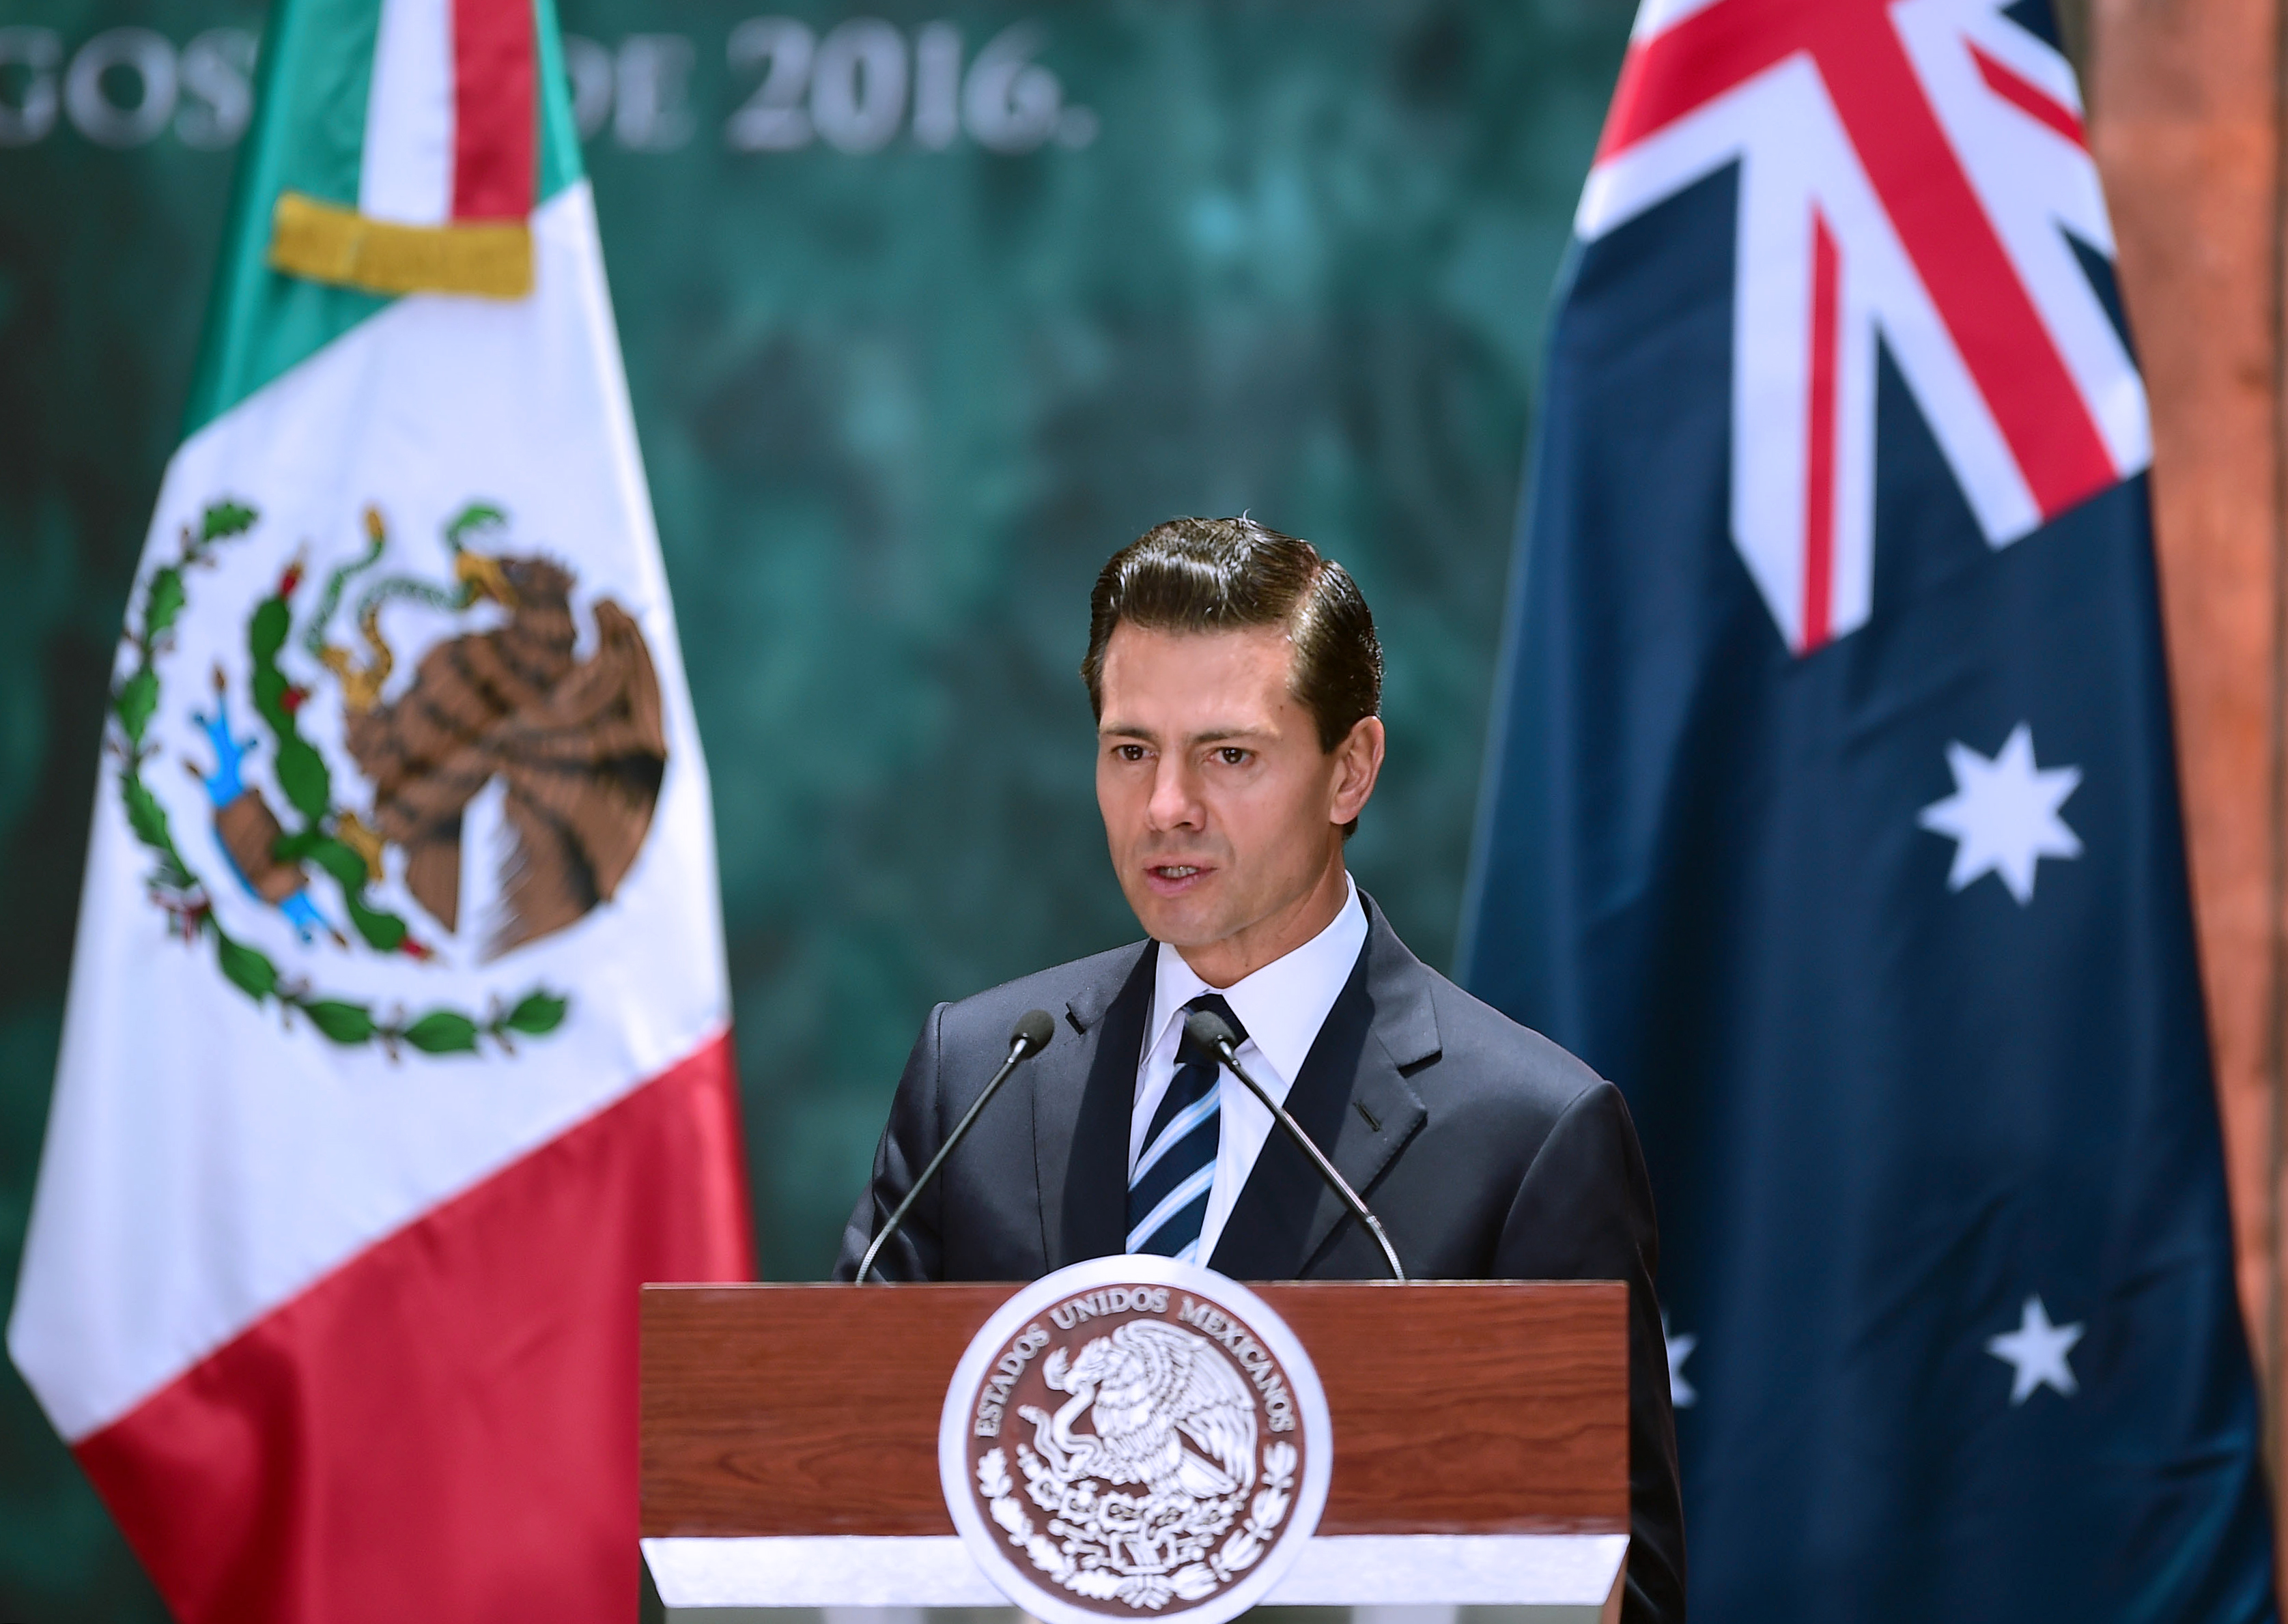 Mexican President Enrique Pena Nieto delivers a speech during the welcoming ceremony in honour of Australian Governor-General Sir Peter Cosgrove (out of frame) at the National Palace in Mexico City on August 1, 2016.                     Cosgrove arrived in Mexico on an official visit. / AFP / ALFREDO ESTRELLA        (Photo credit should read ALFREDO ESTRELLA/AFP/Getty Images)